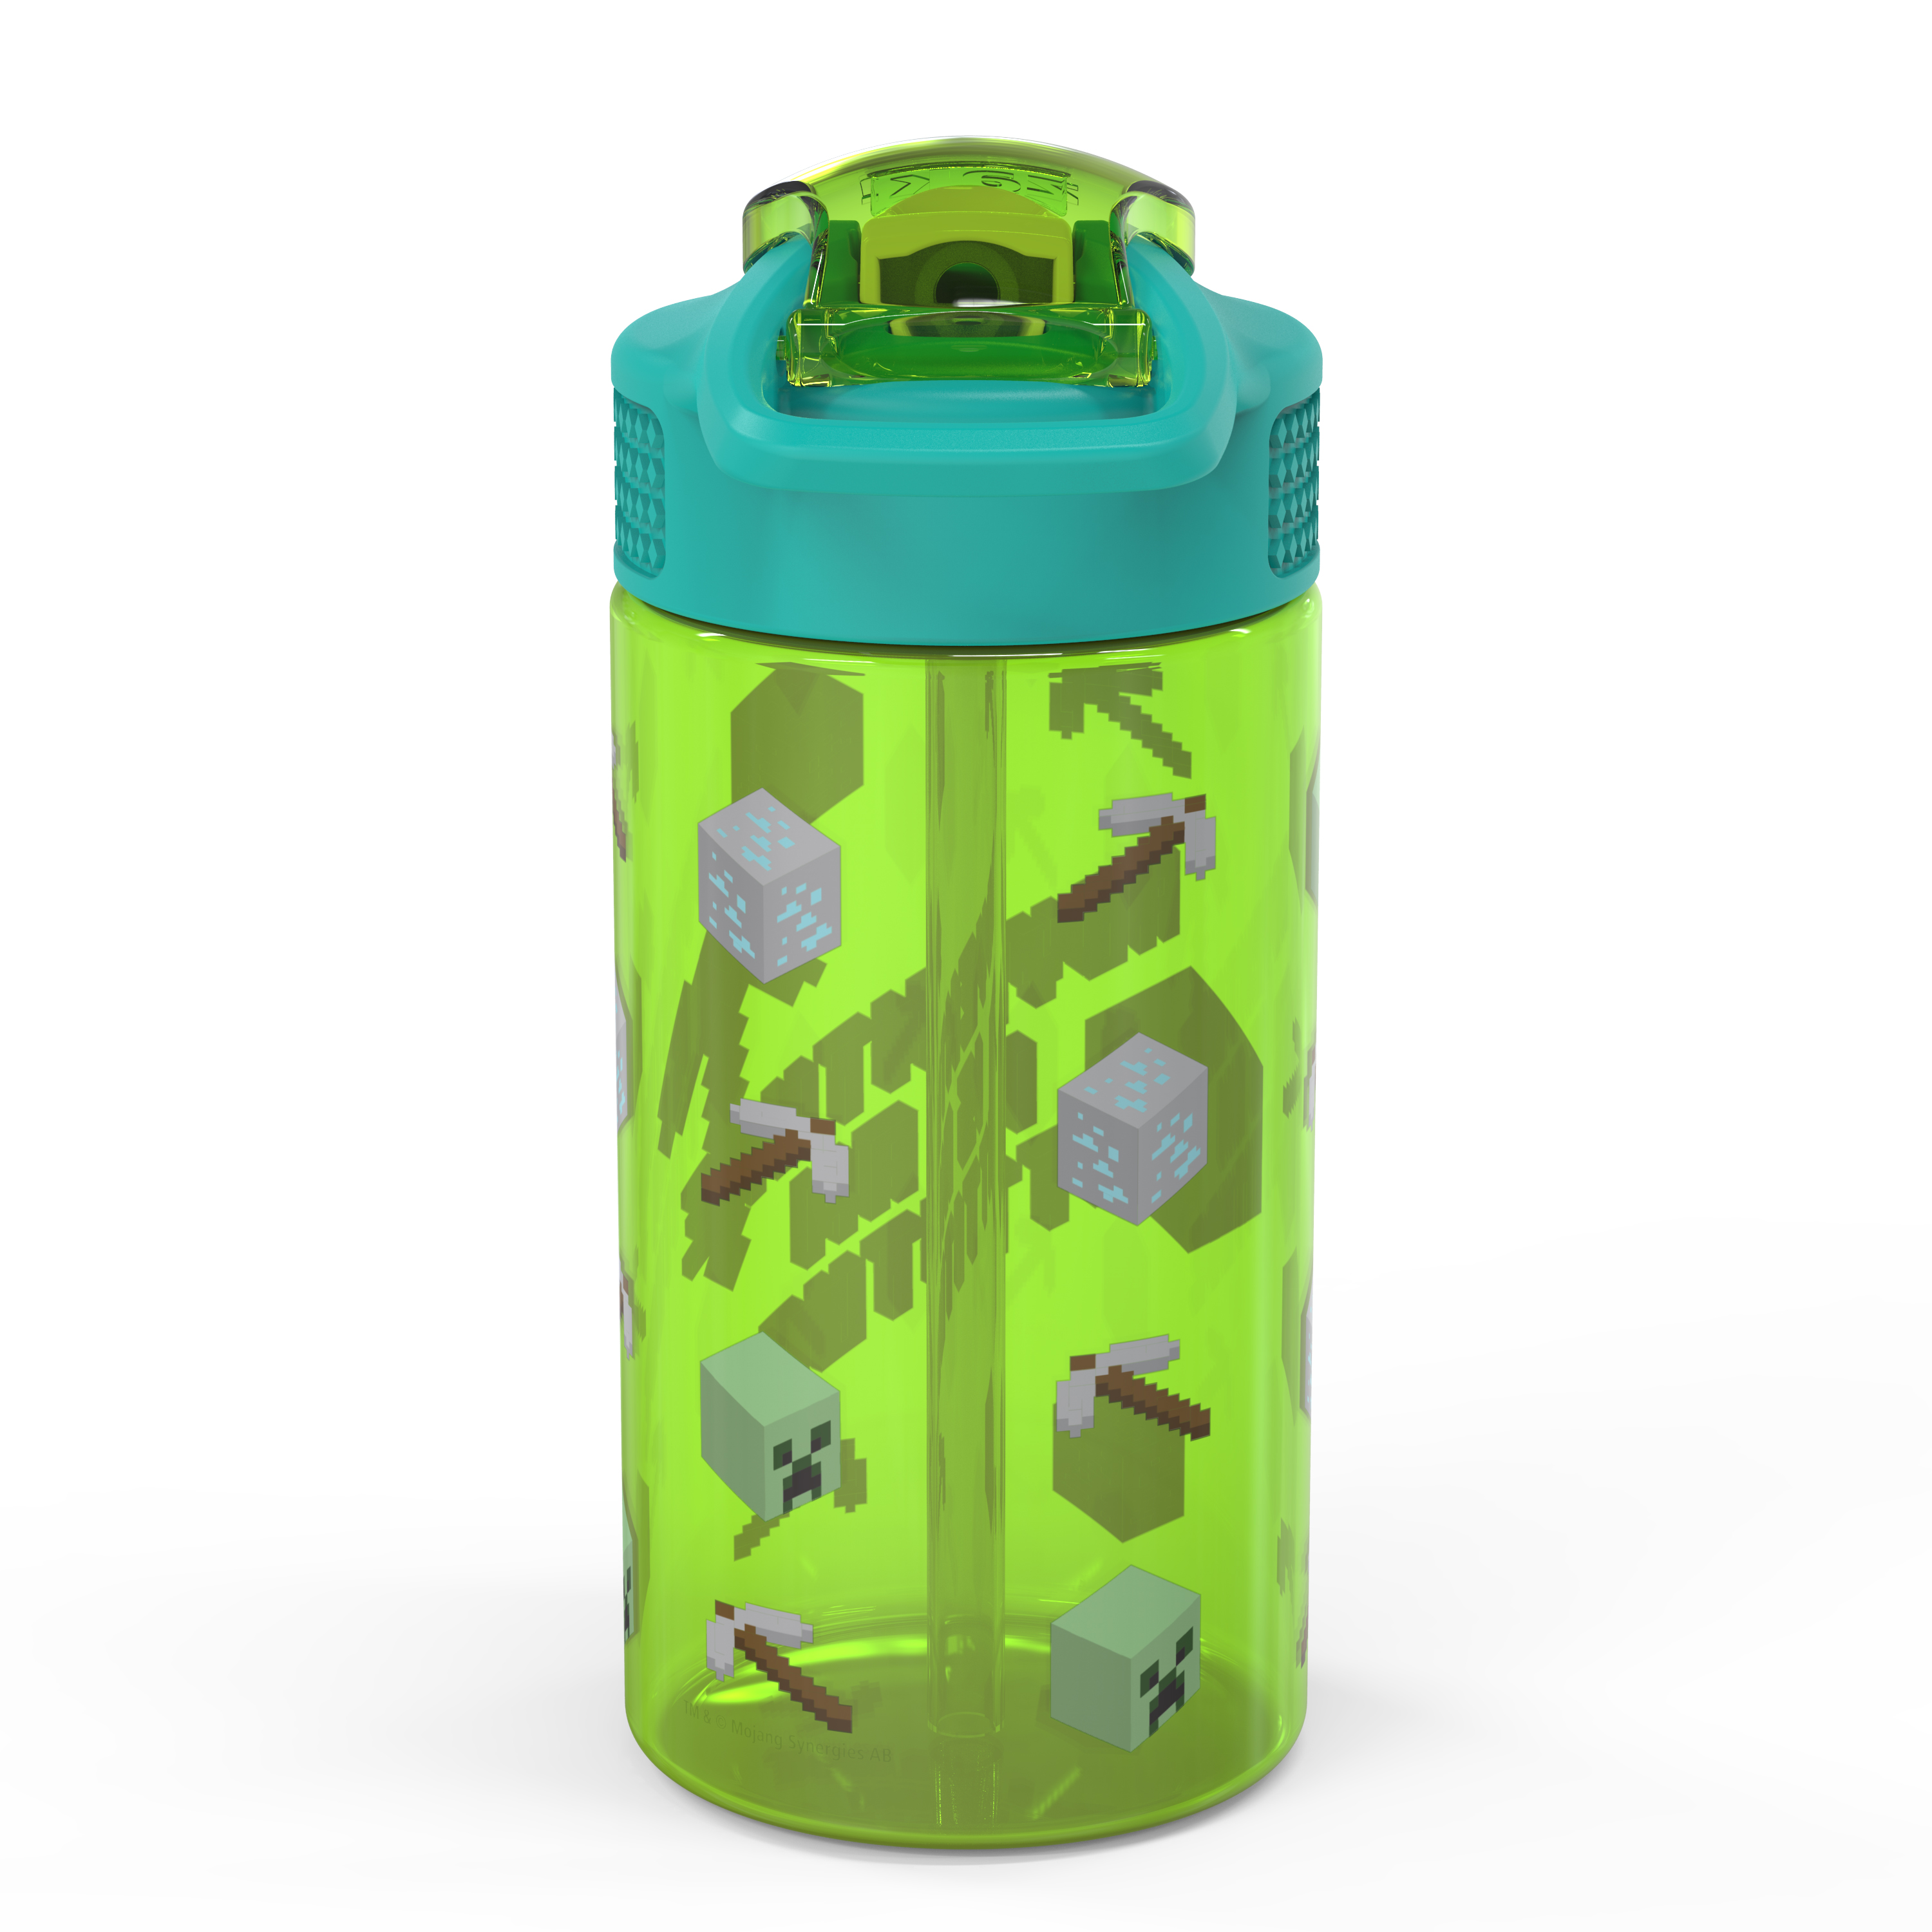 Minecraft 16 ounce Reusable Plastic Water Bottle with Straw, Creeper, 2-piece set slideshow image 2